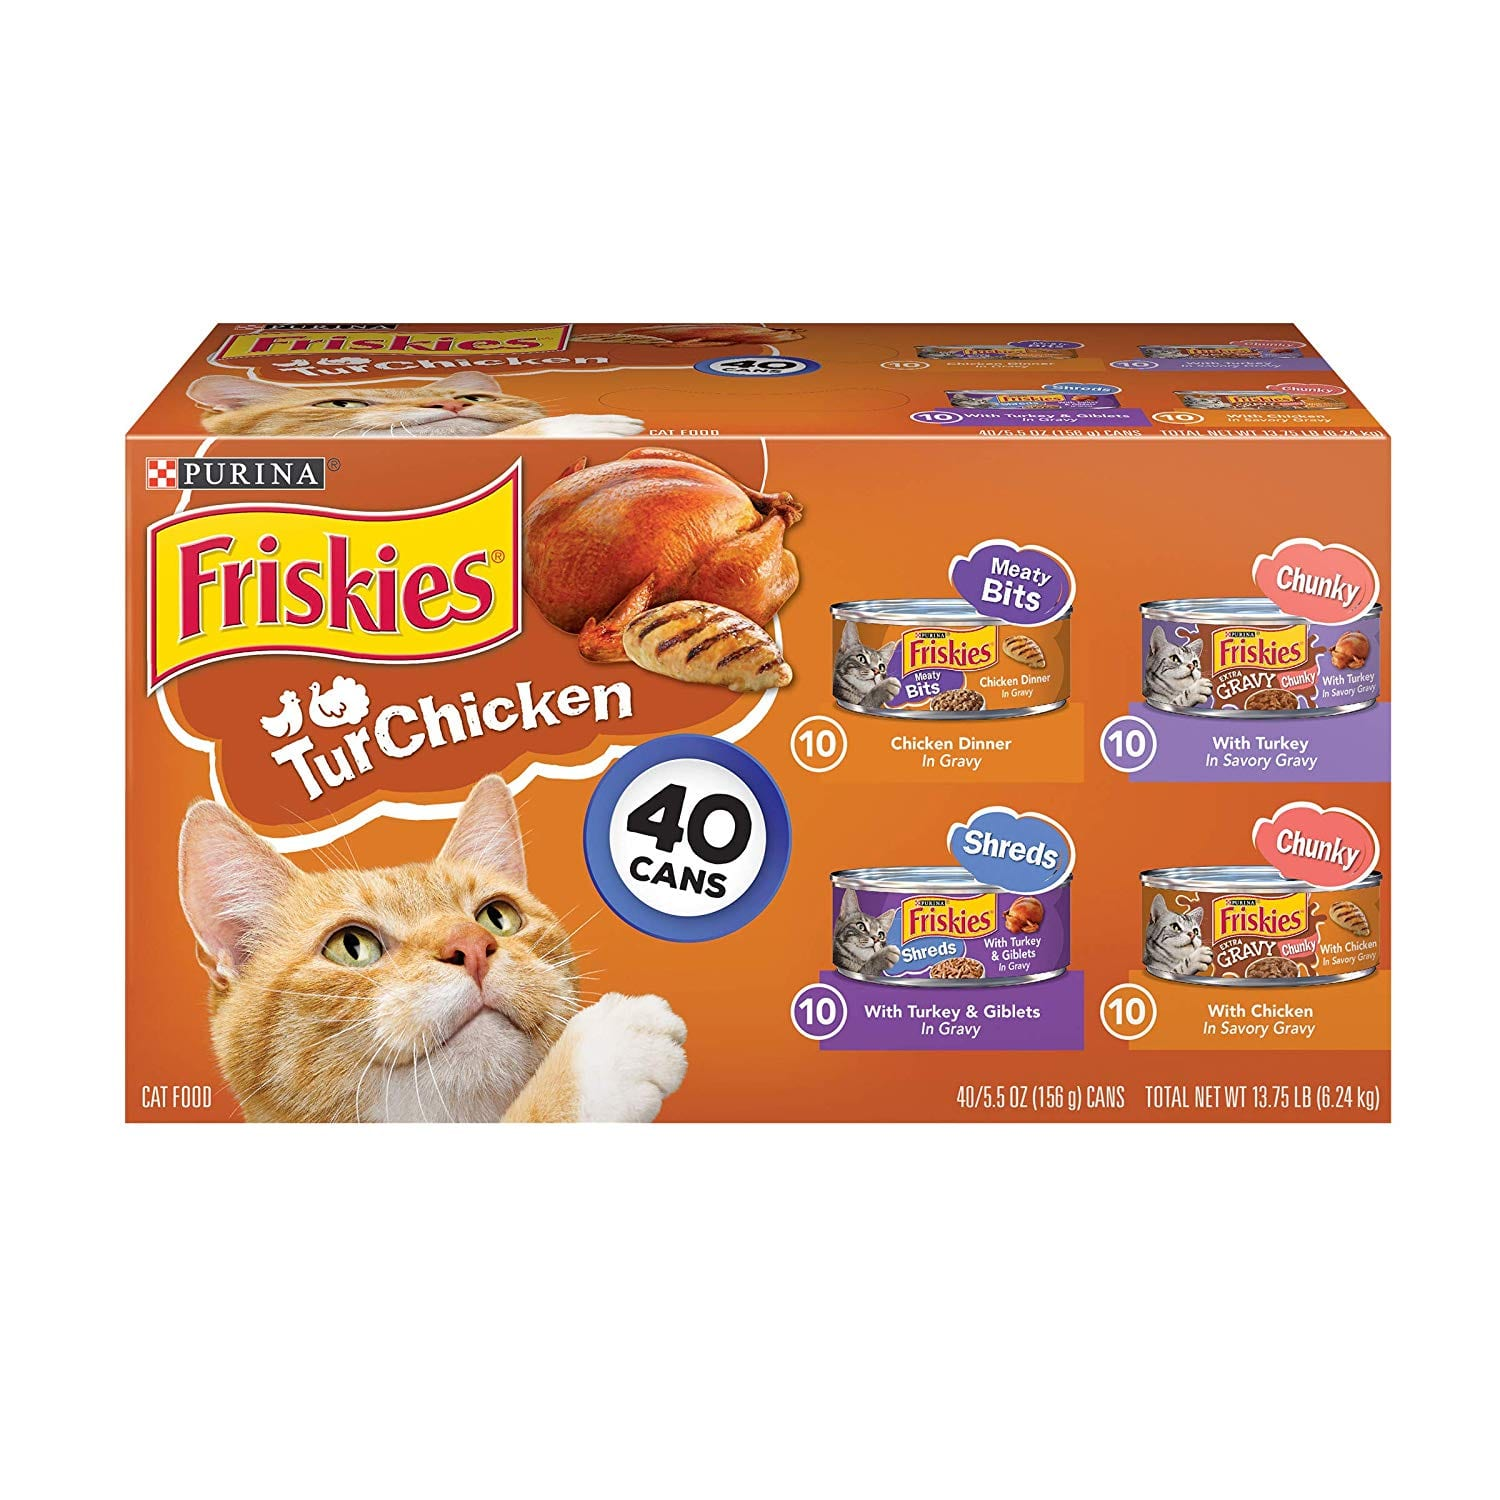 Purina Friskies Canned Wet Cat Food 40 ct. Variety Packs $7 w/ S&S YMMV